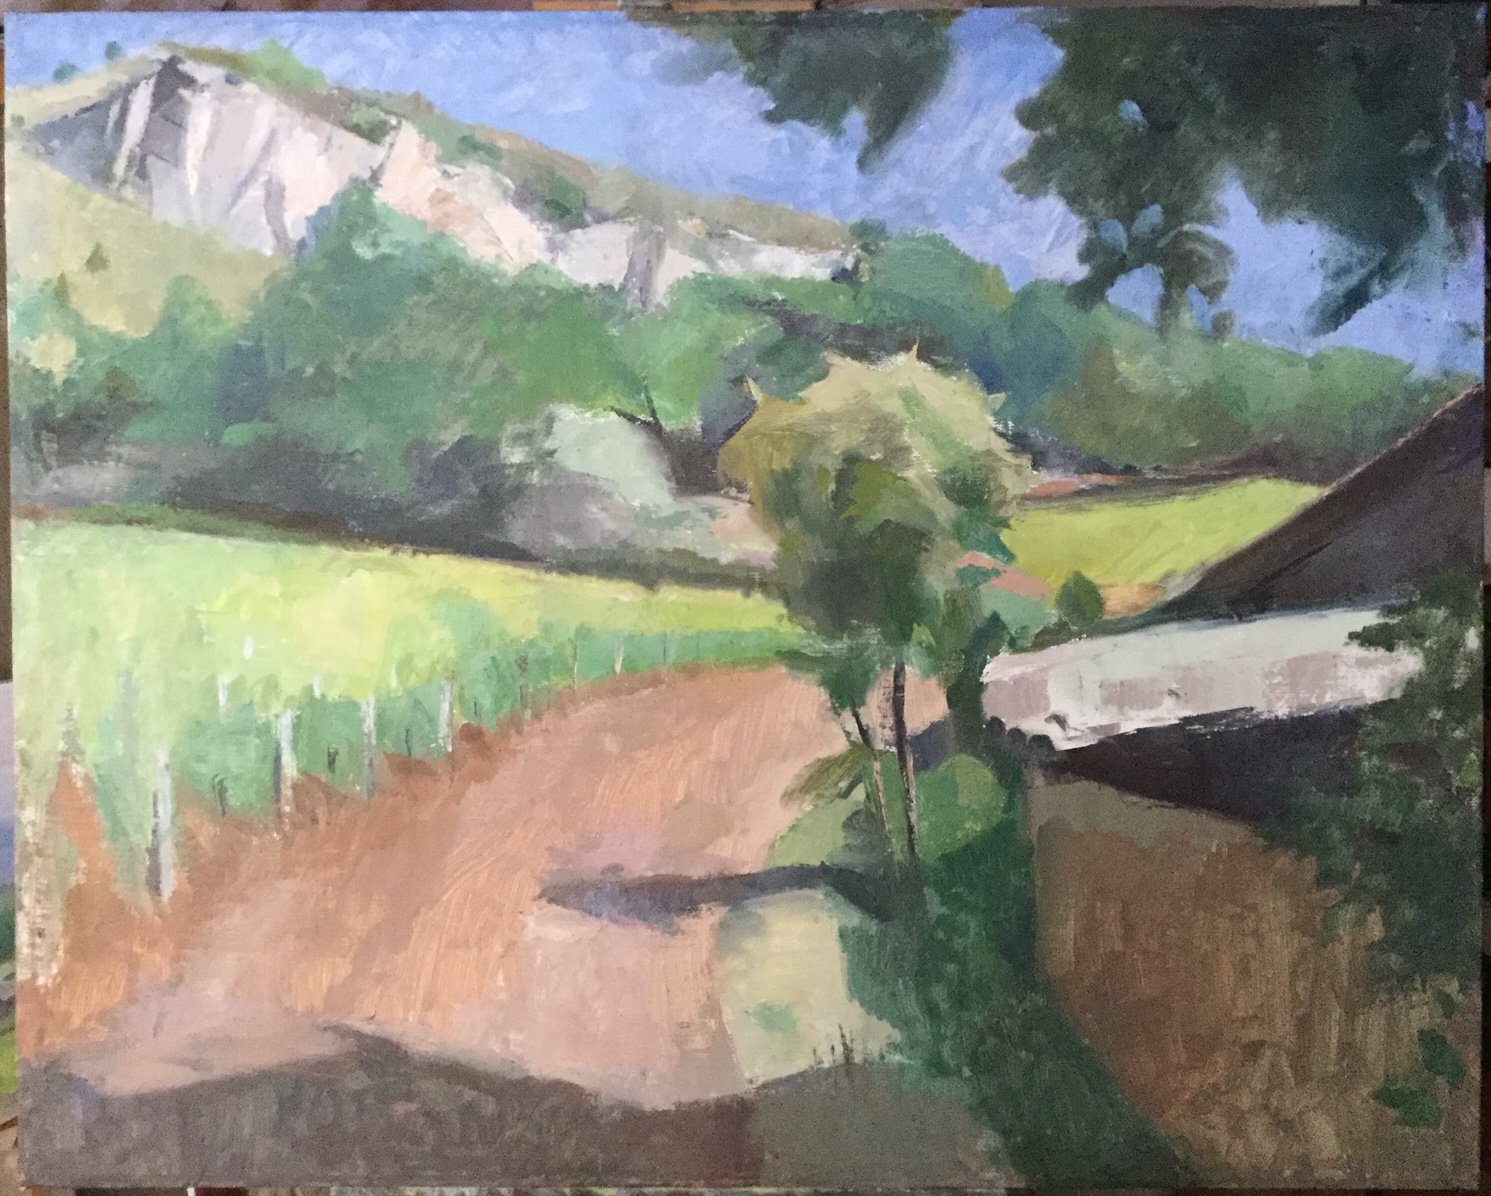 Solutré-Pouilly Vineyard, 24 x 30, oil on linen